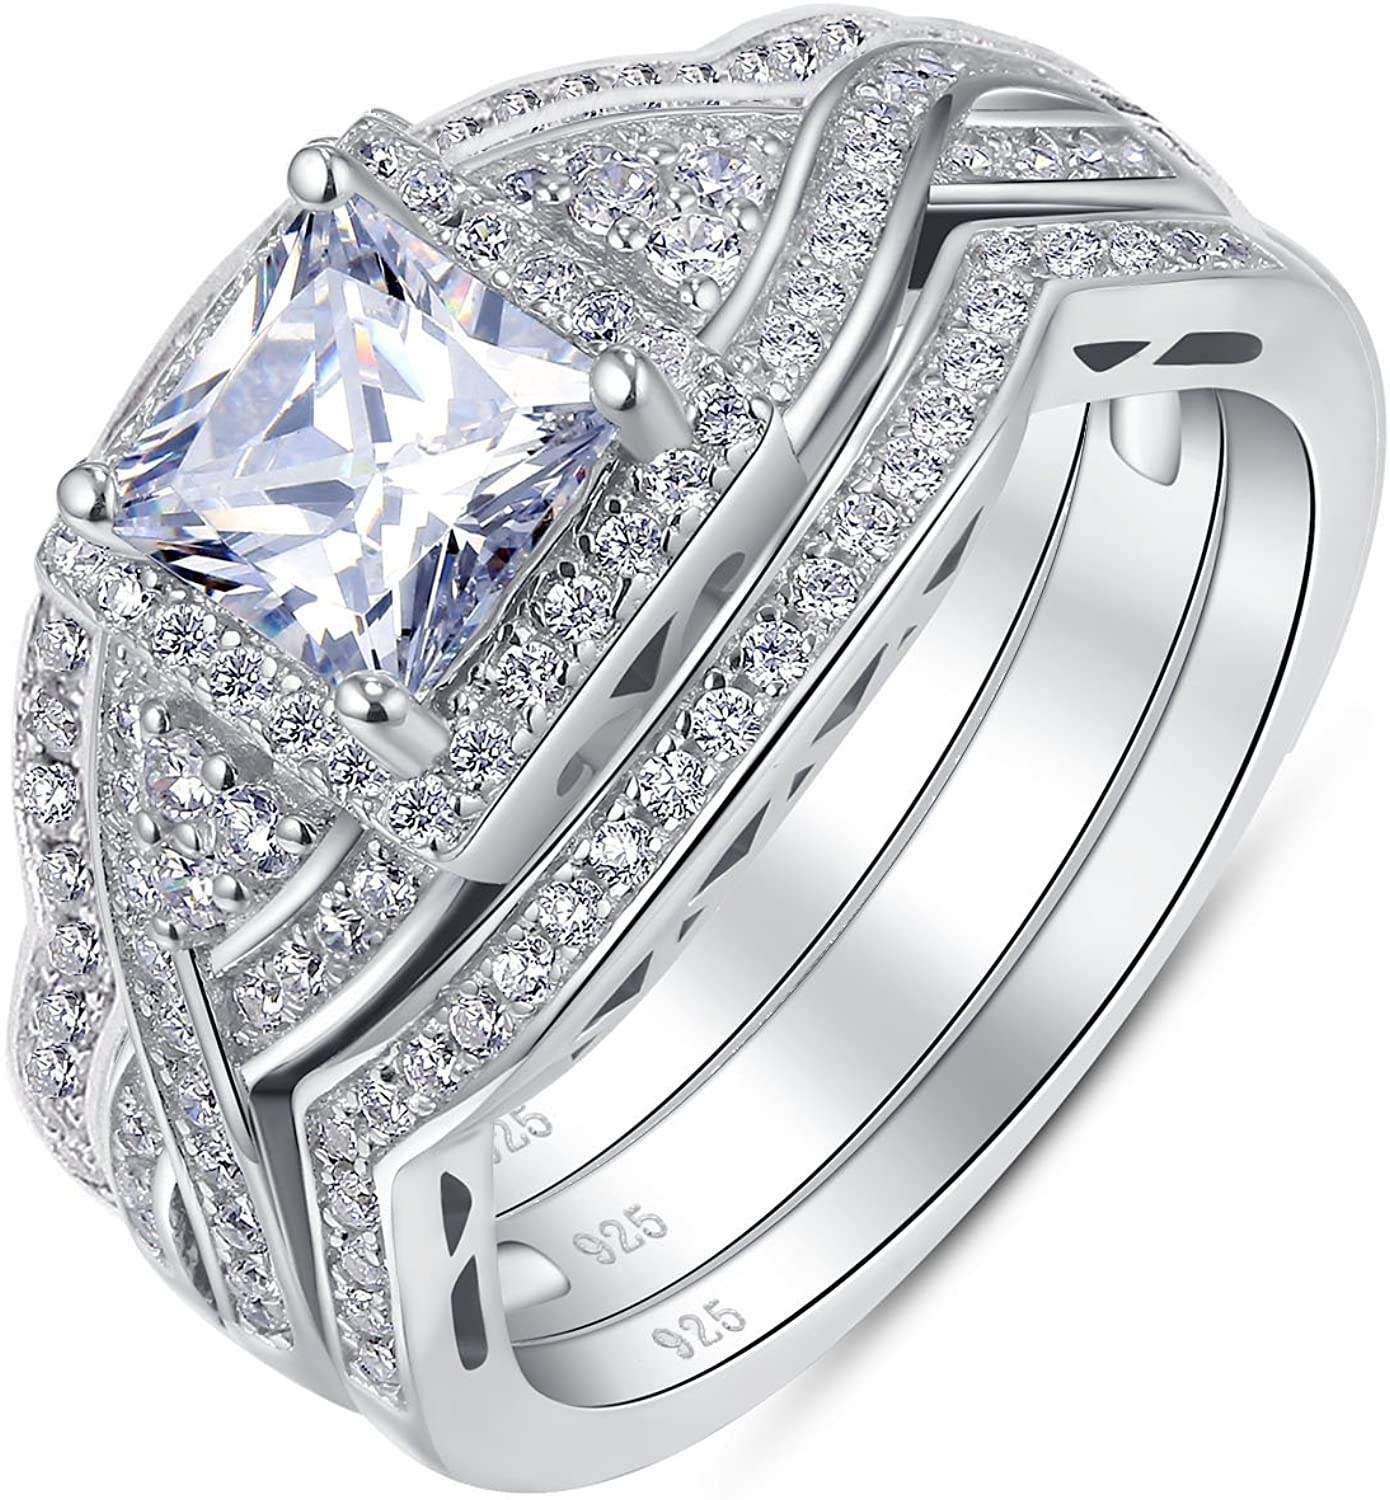 BL Jewelry Sterling Silver 3 Pieces Princess Cut Cubic Zirconia Crisscross Infinity Engagement Wedding Ring Set